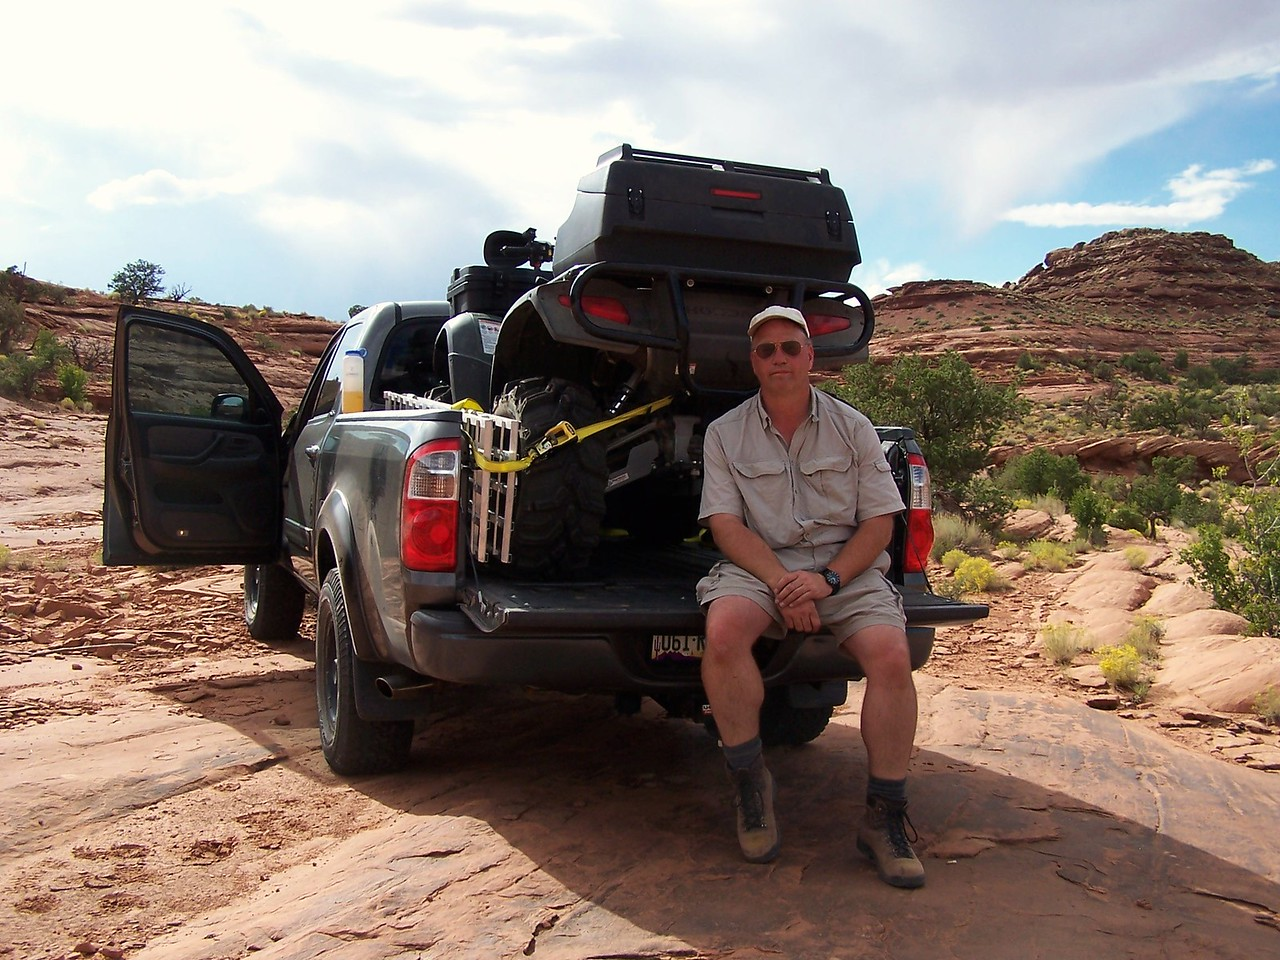 With the ATV loaded and secured, I was ready for the four hour drive back home to Flagstaff.